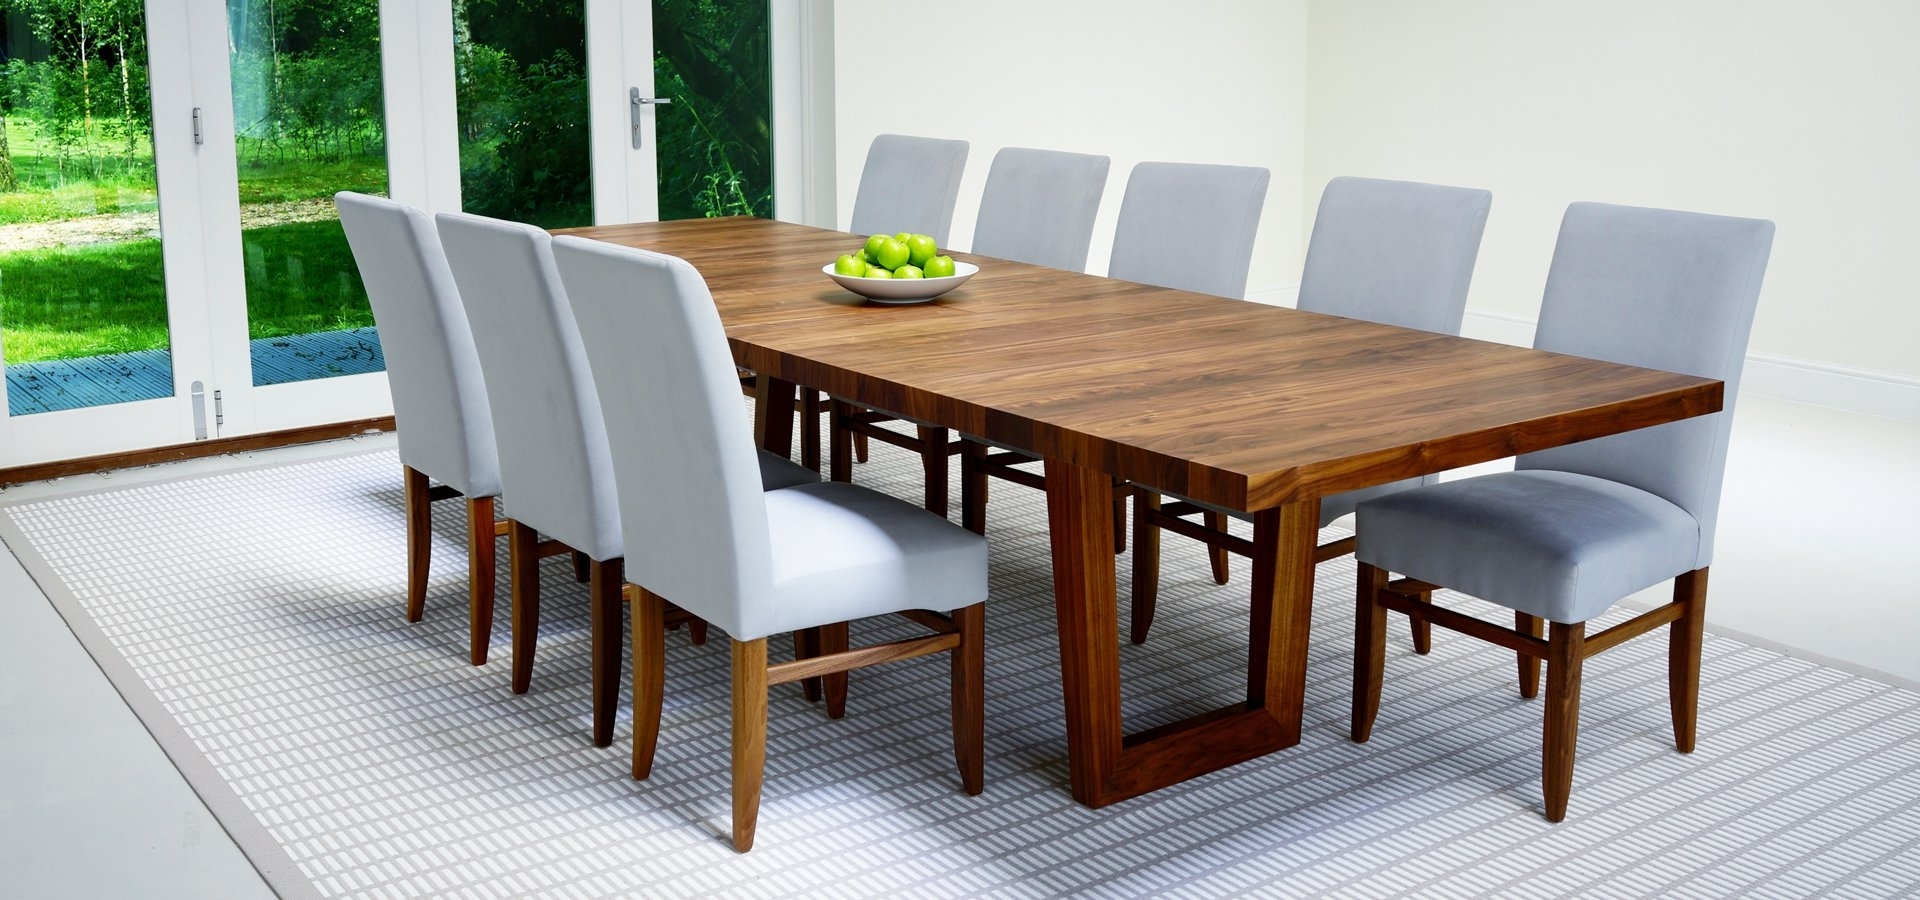 Widely Used Modern Extendable Dining Table Set – Castrophotos For Extending Dining Tables Sets (View 5 of 25)